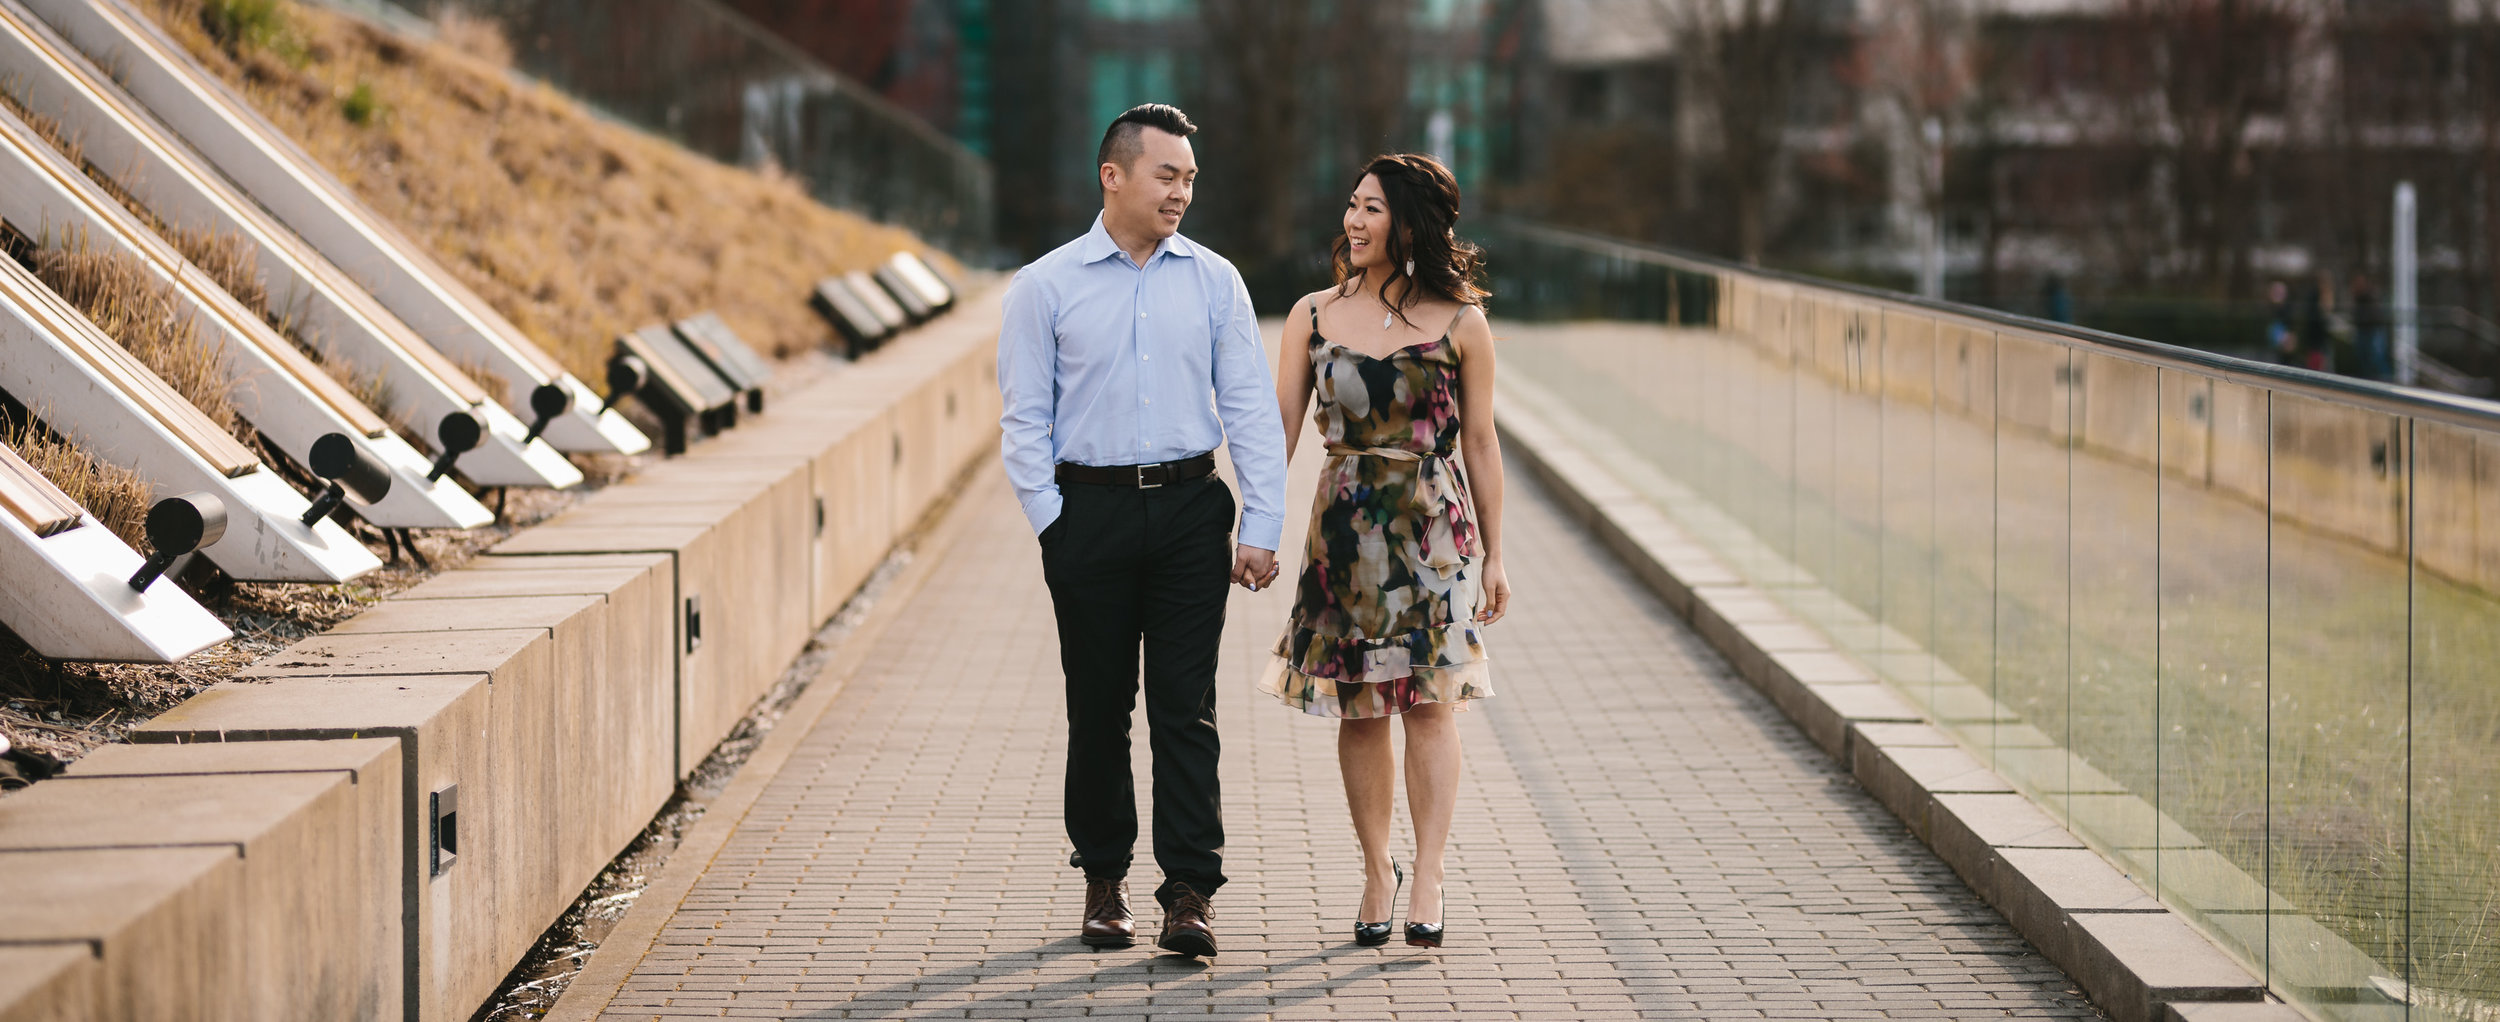 vancouver engagement photography in coal harbour during sunset in spring